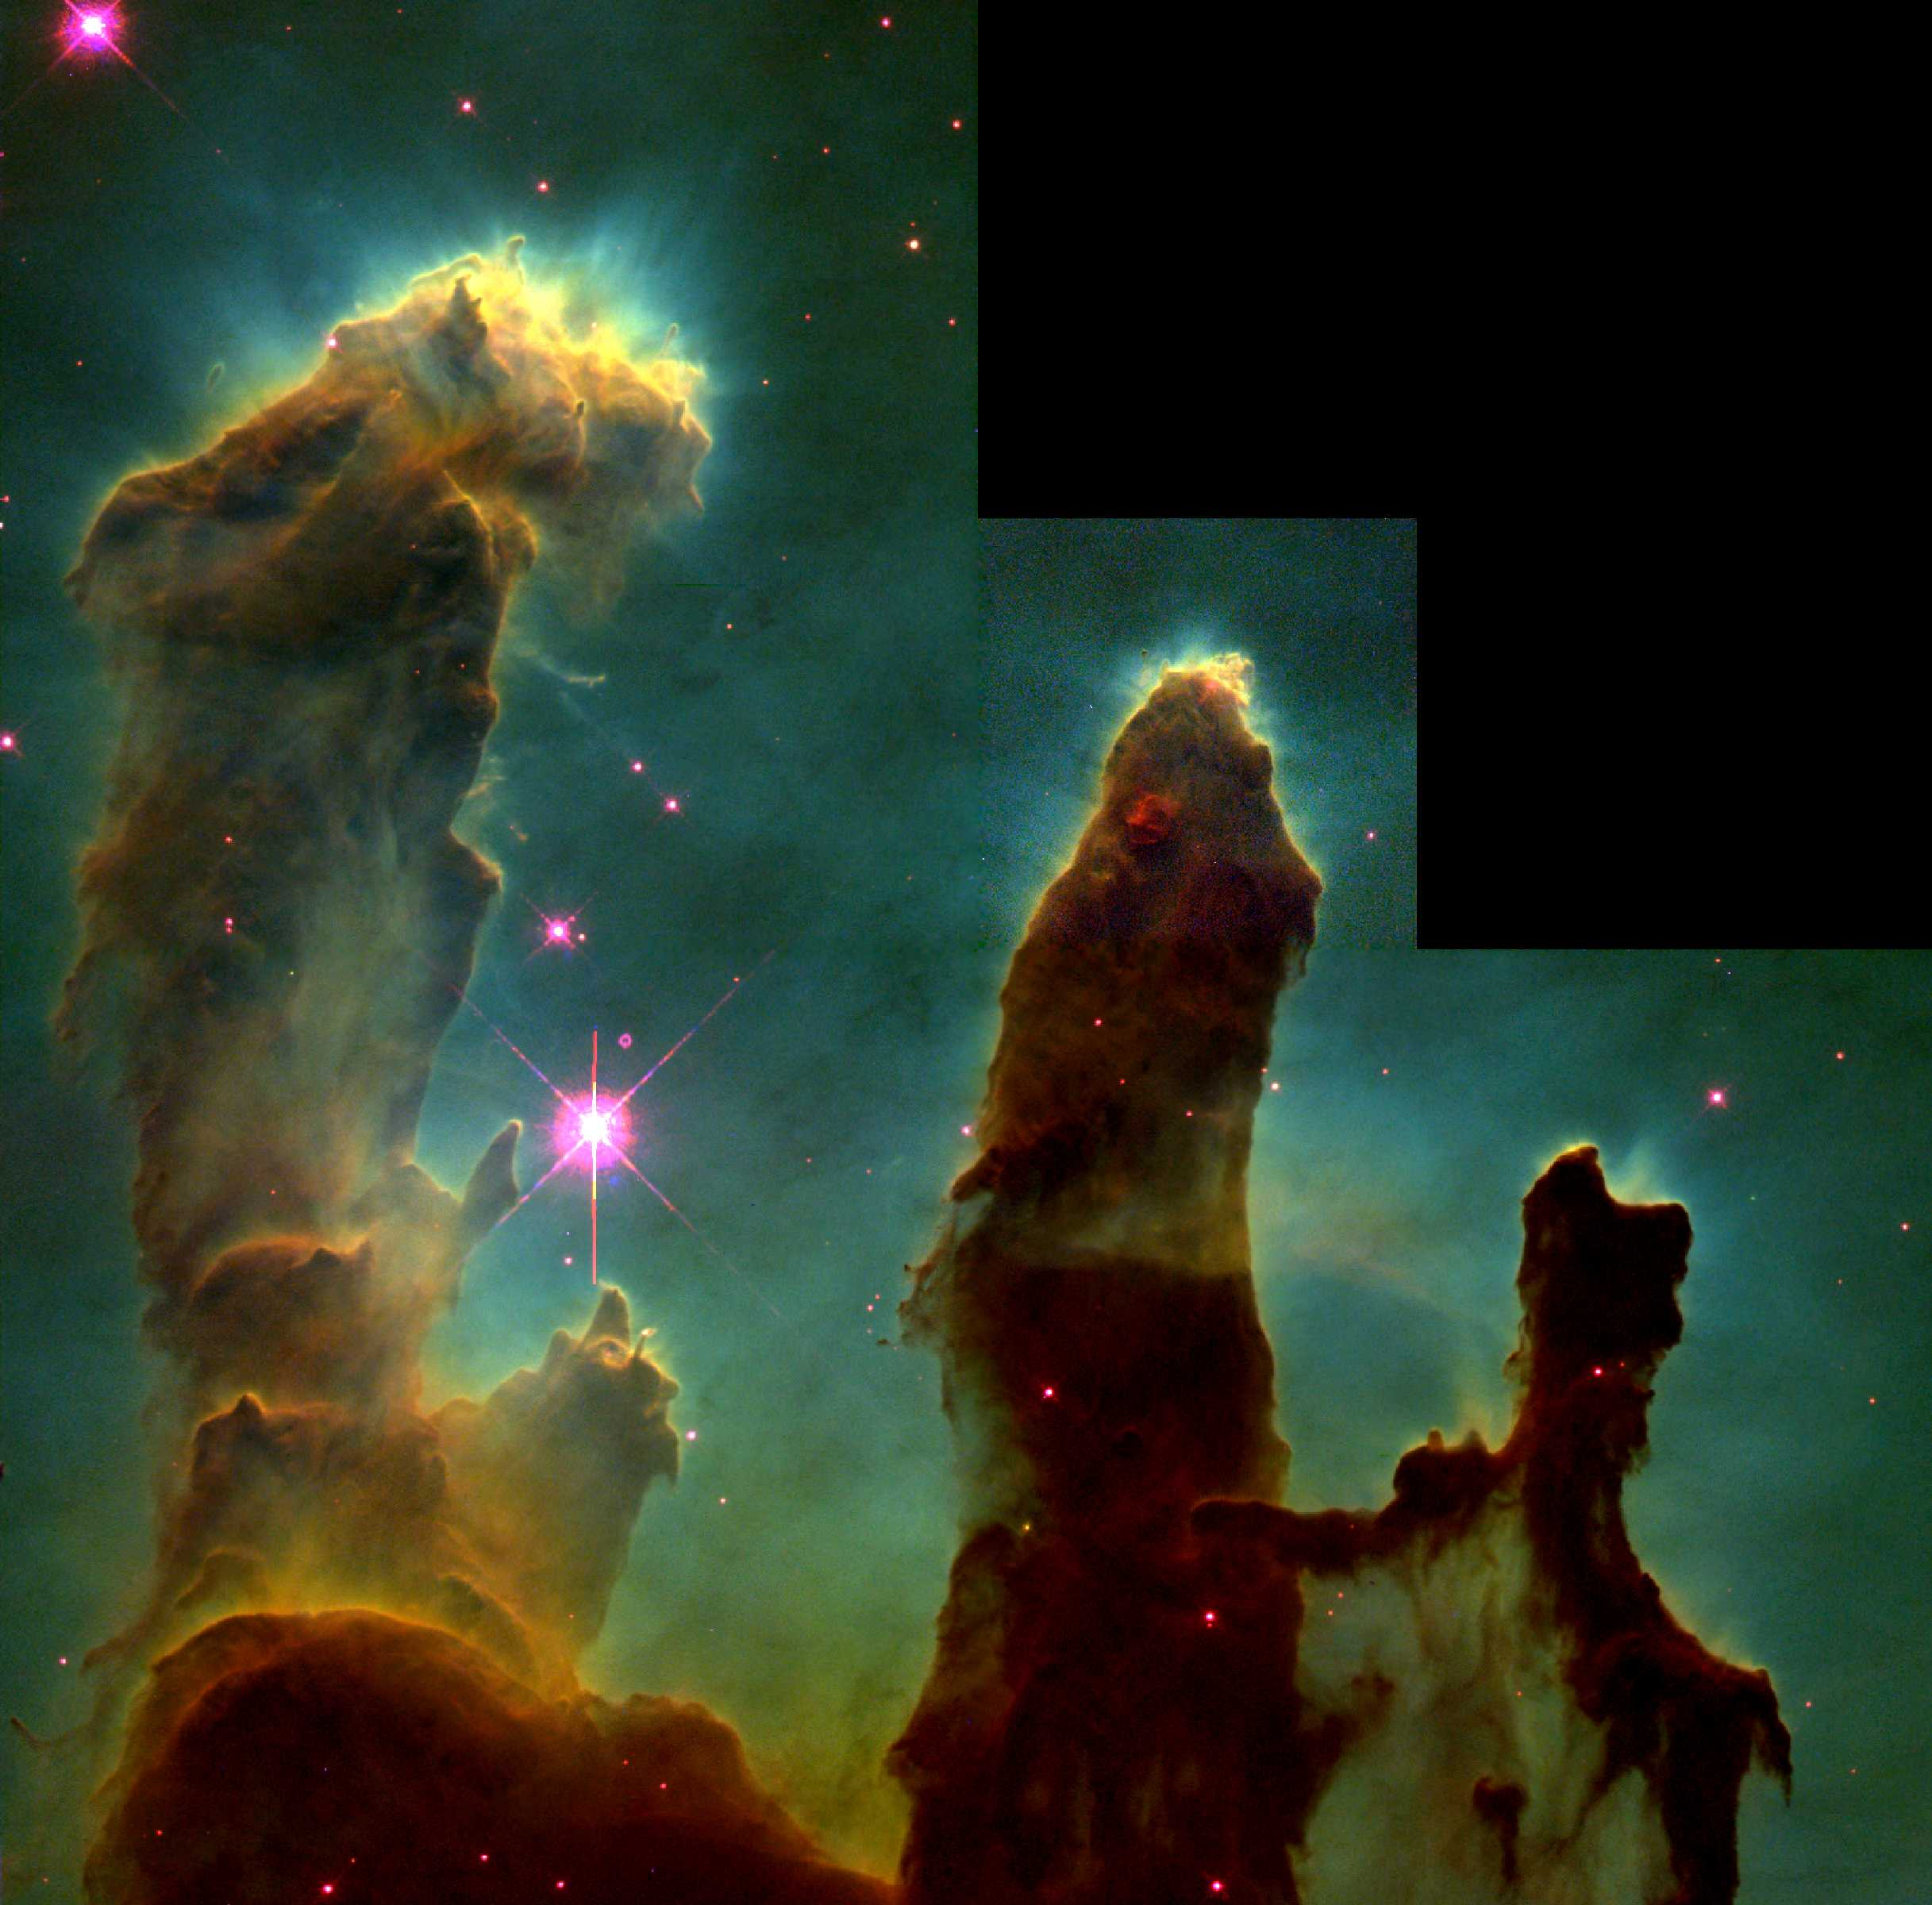 Hubble's Pillars of Creation